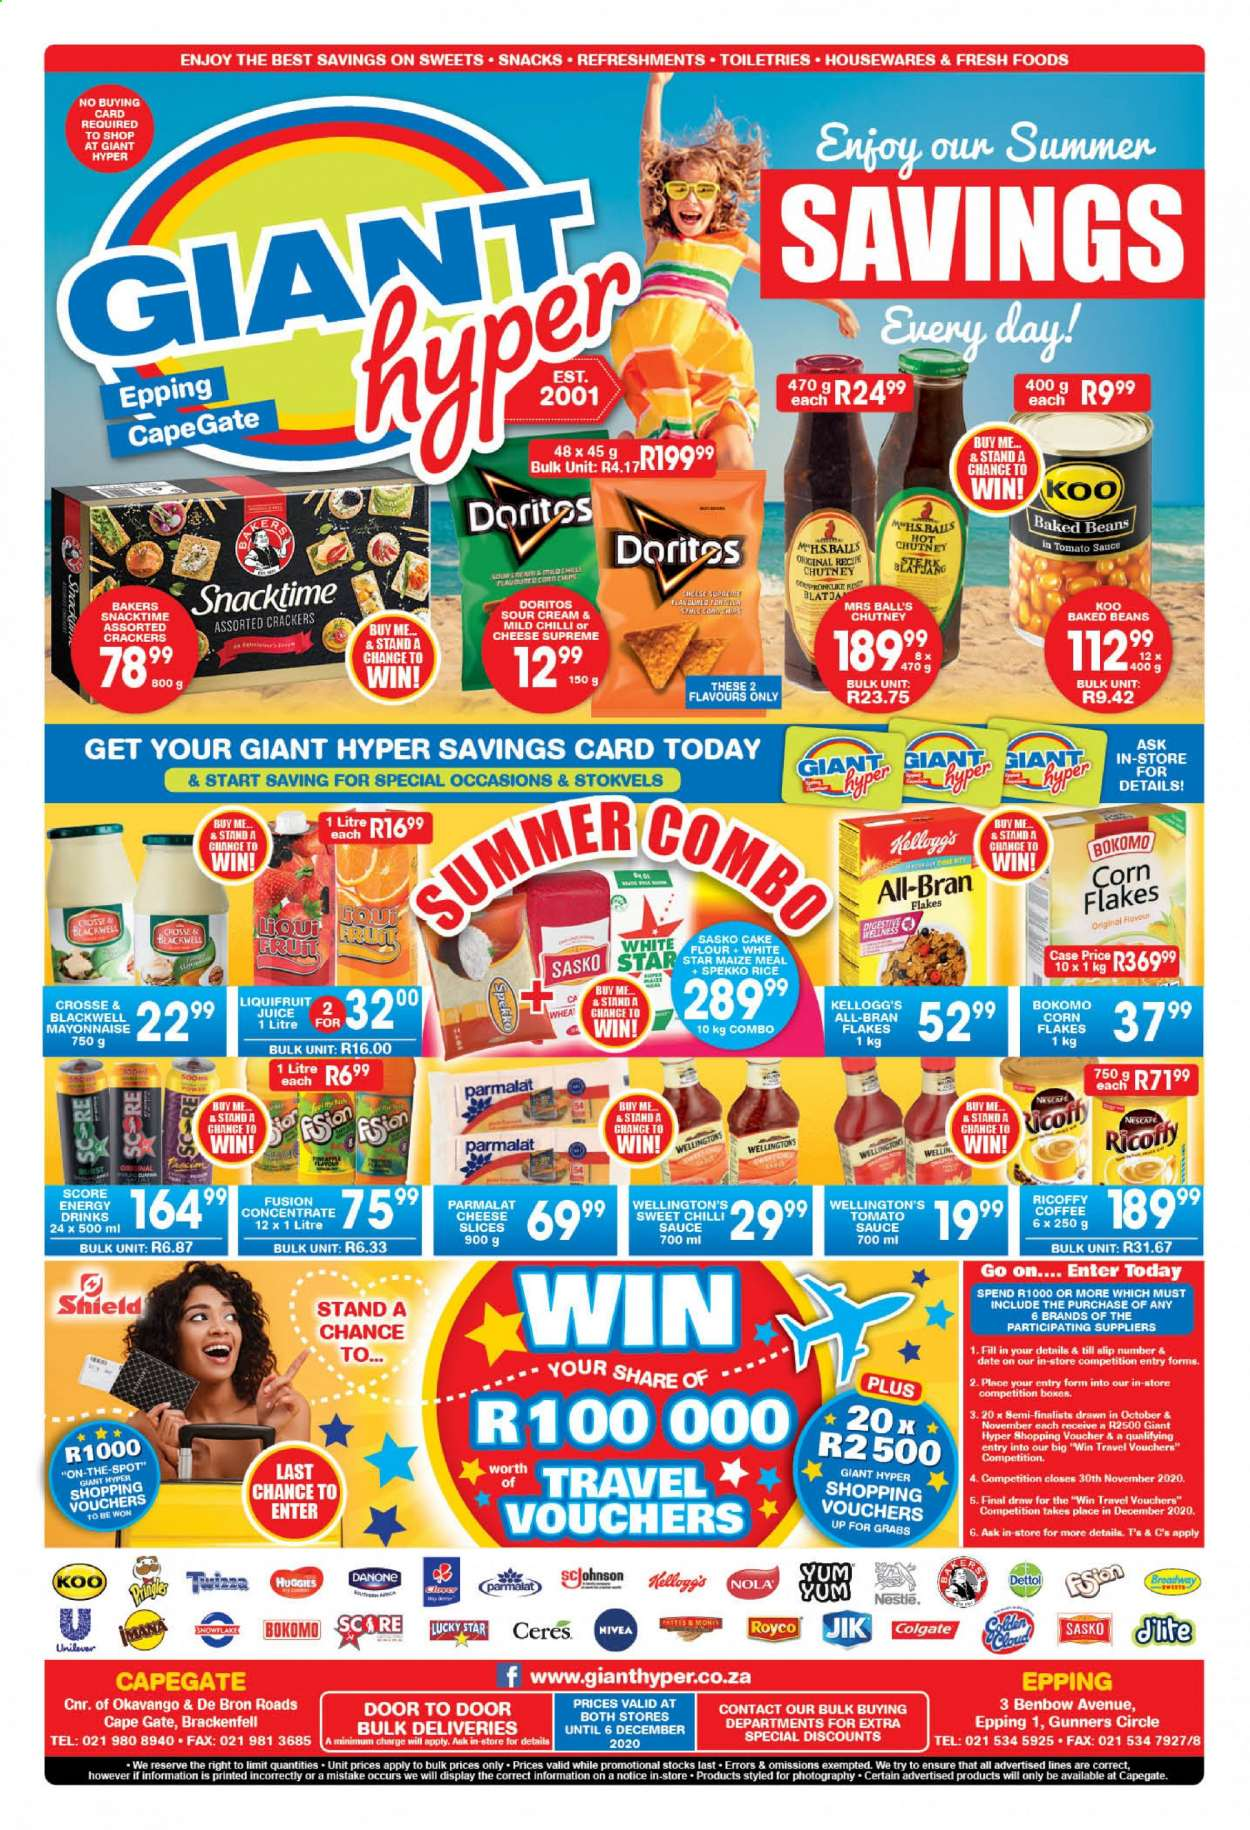 Giant Hyper catalogue  - 11.17.2020 - 12.06.2020 - Sales products - beans, bran, coffee, corn, crackers, cream, doritos, colgate, flour, mayonnaise, nestlé, rice, shield, snowflake, sour cream, tomato sauce, huggies, pineapple, cheese slices, nivea, snack, danone, corn flakes, dettol, cheese, ricoffy, juice, sauce, flakes, cake, sweets, nescafé, snacktime, doors, tomato. Page 1.